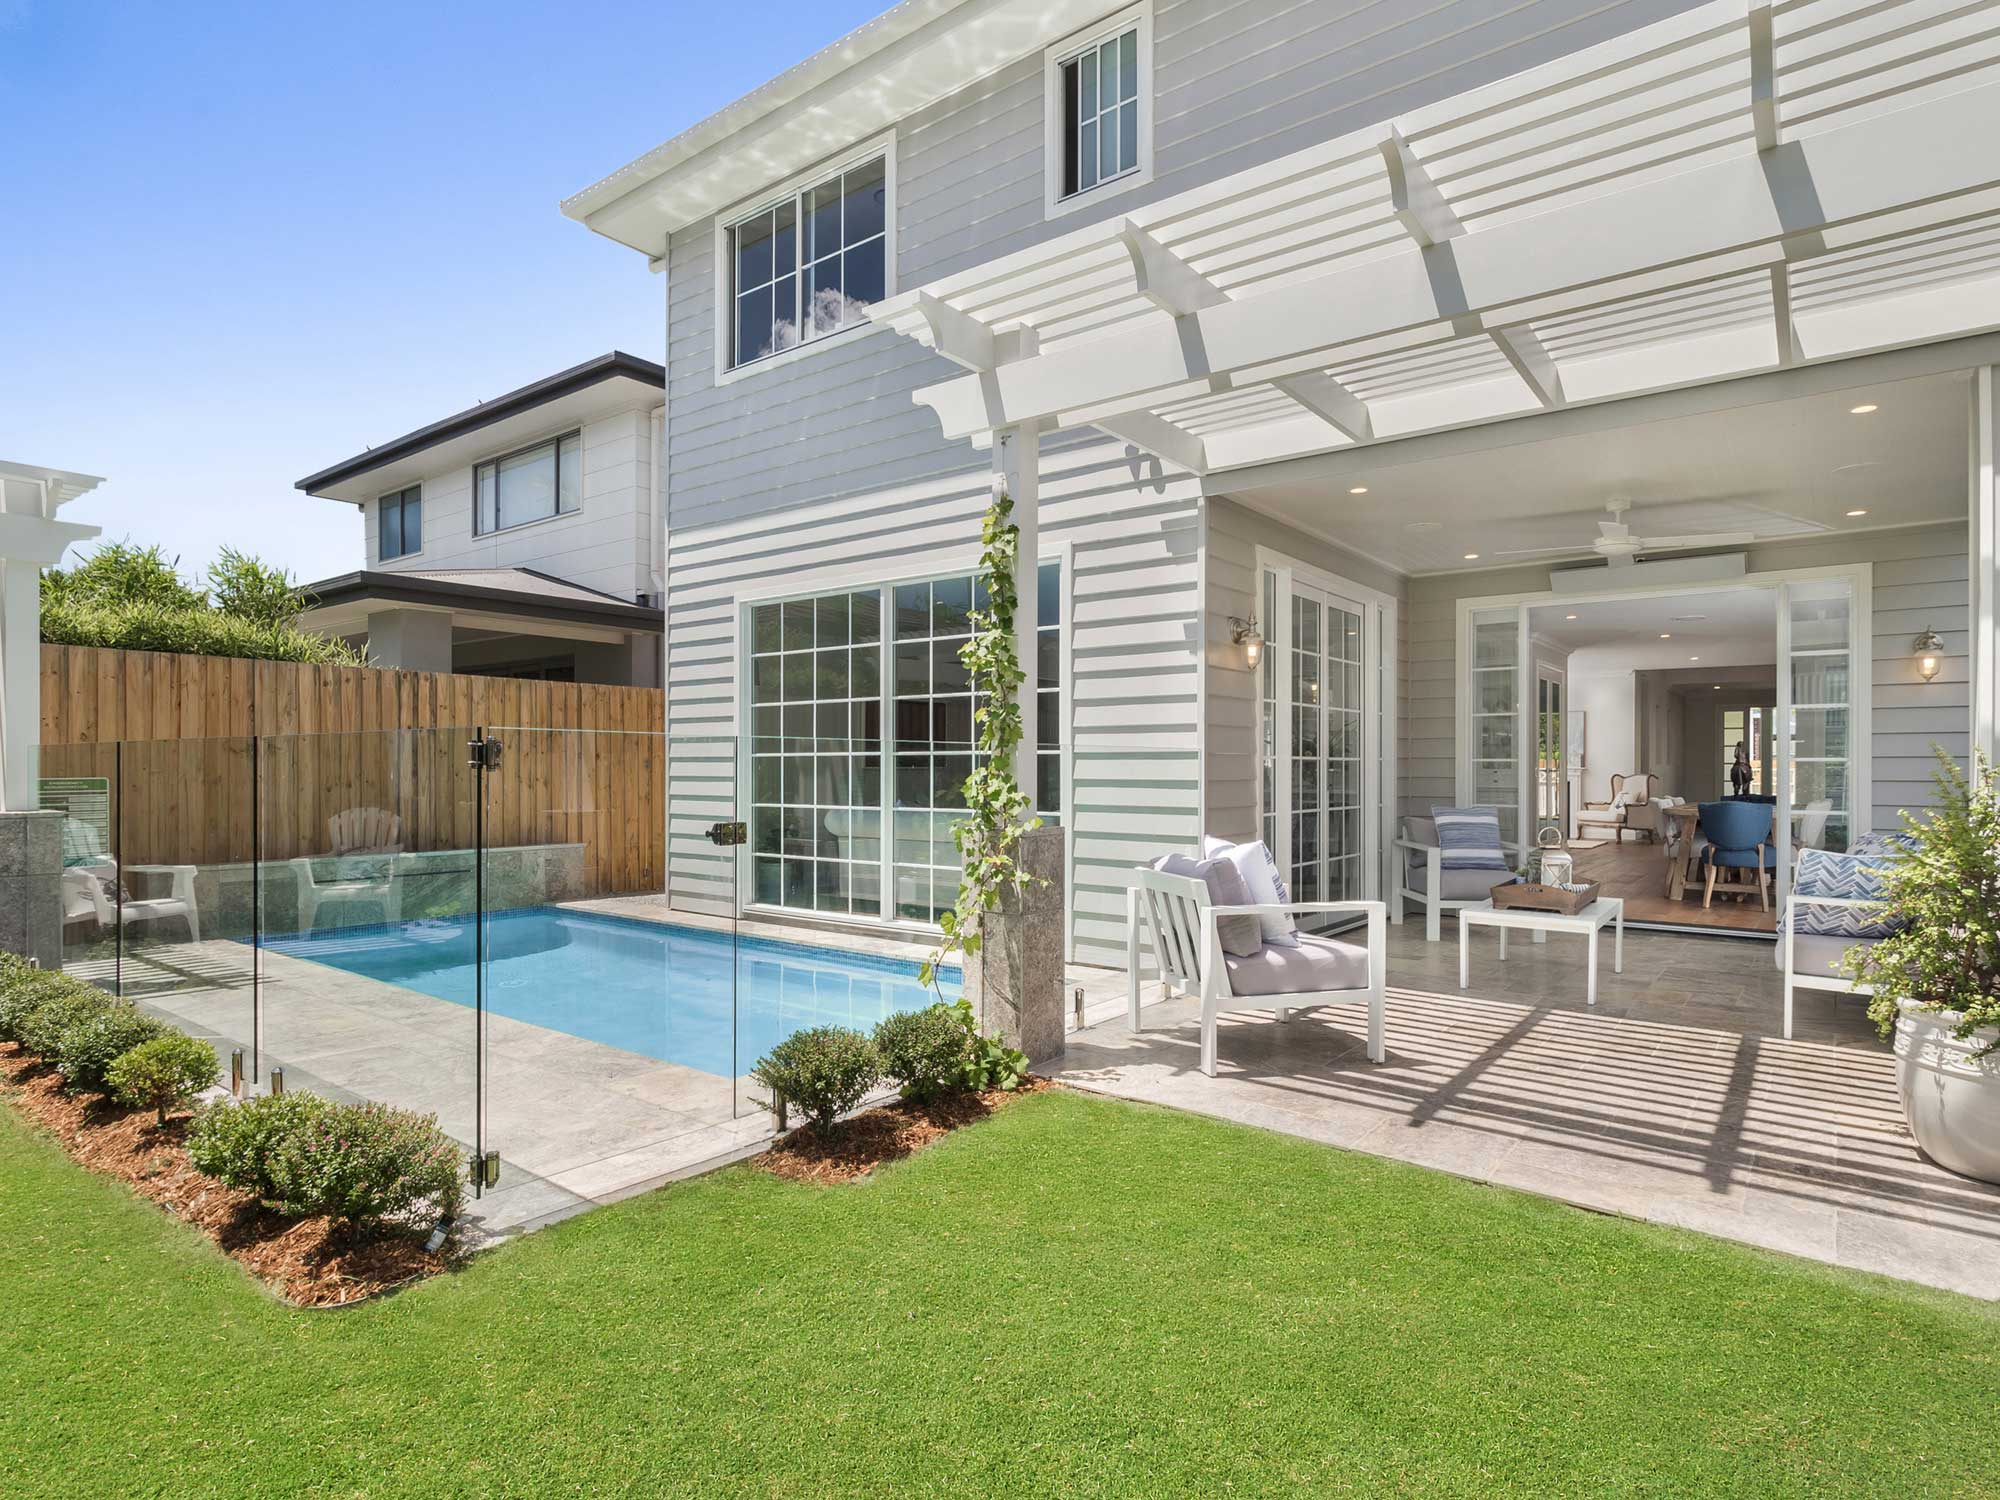 house photography Brisbane  - capturing the outdoor living spaces